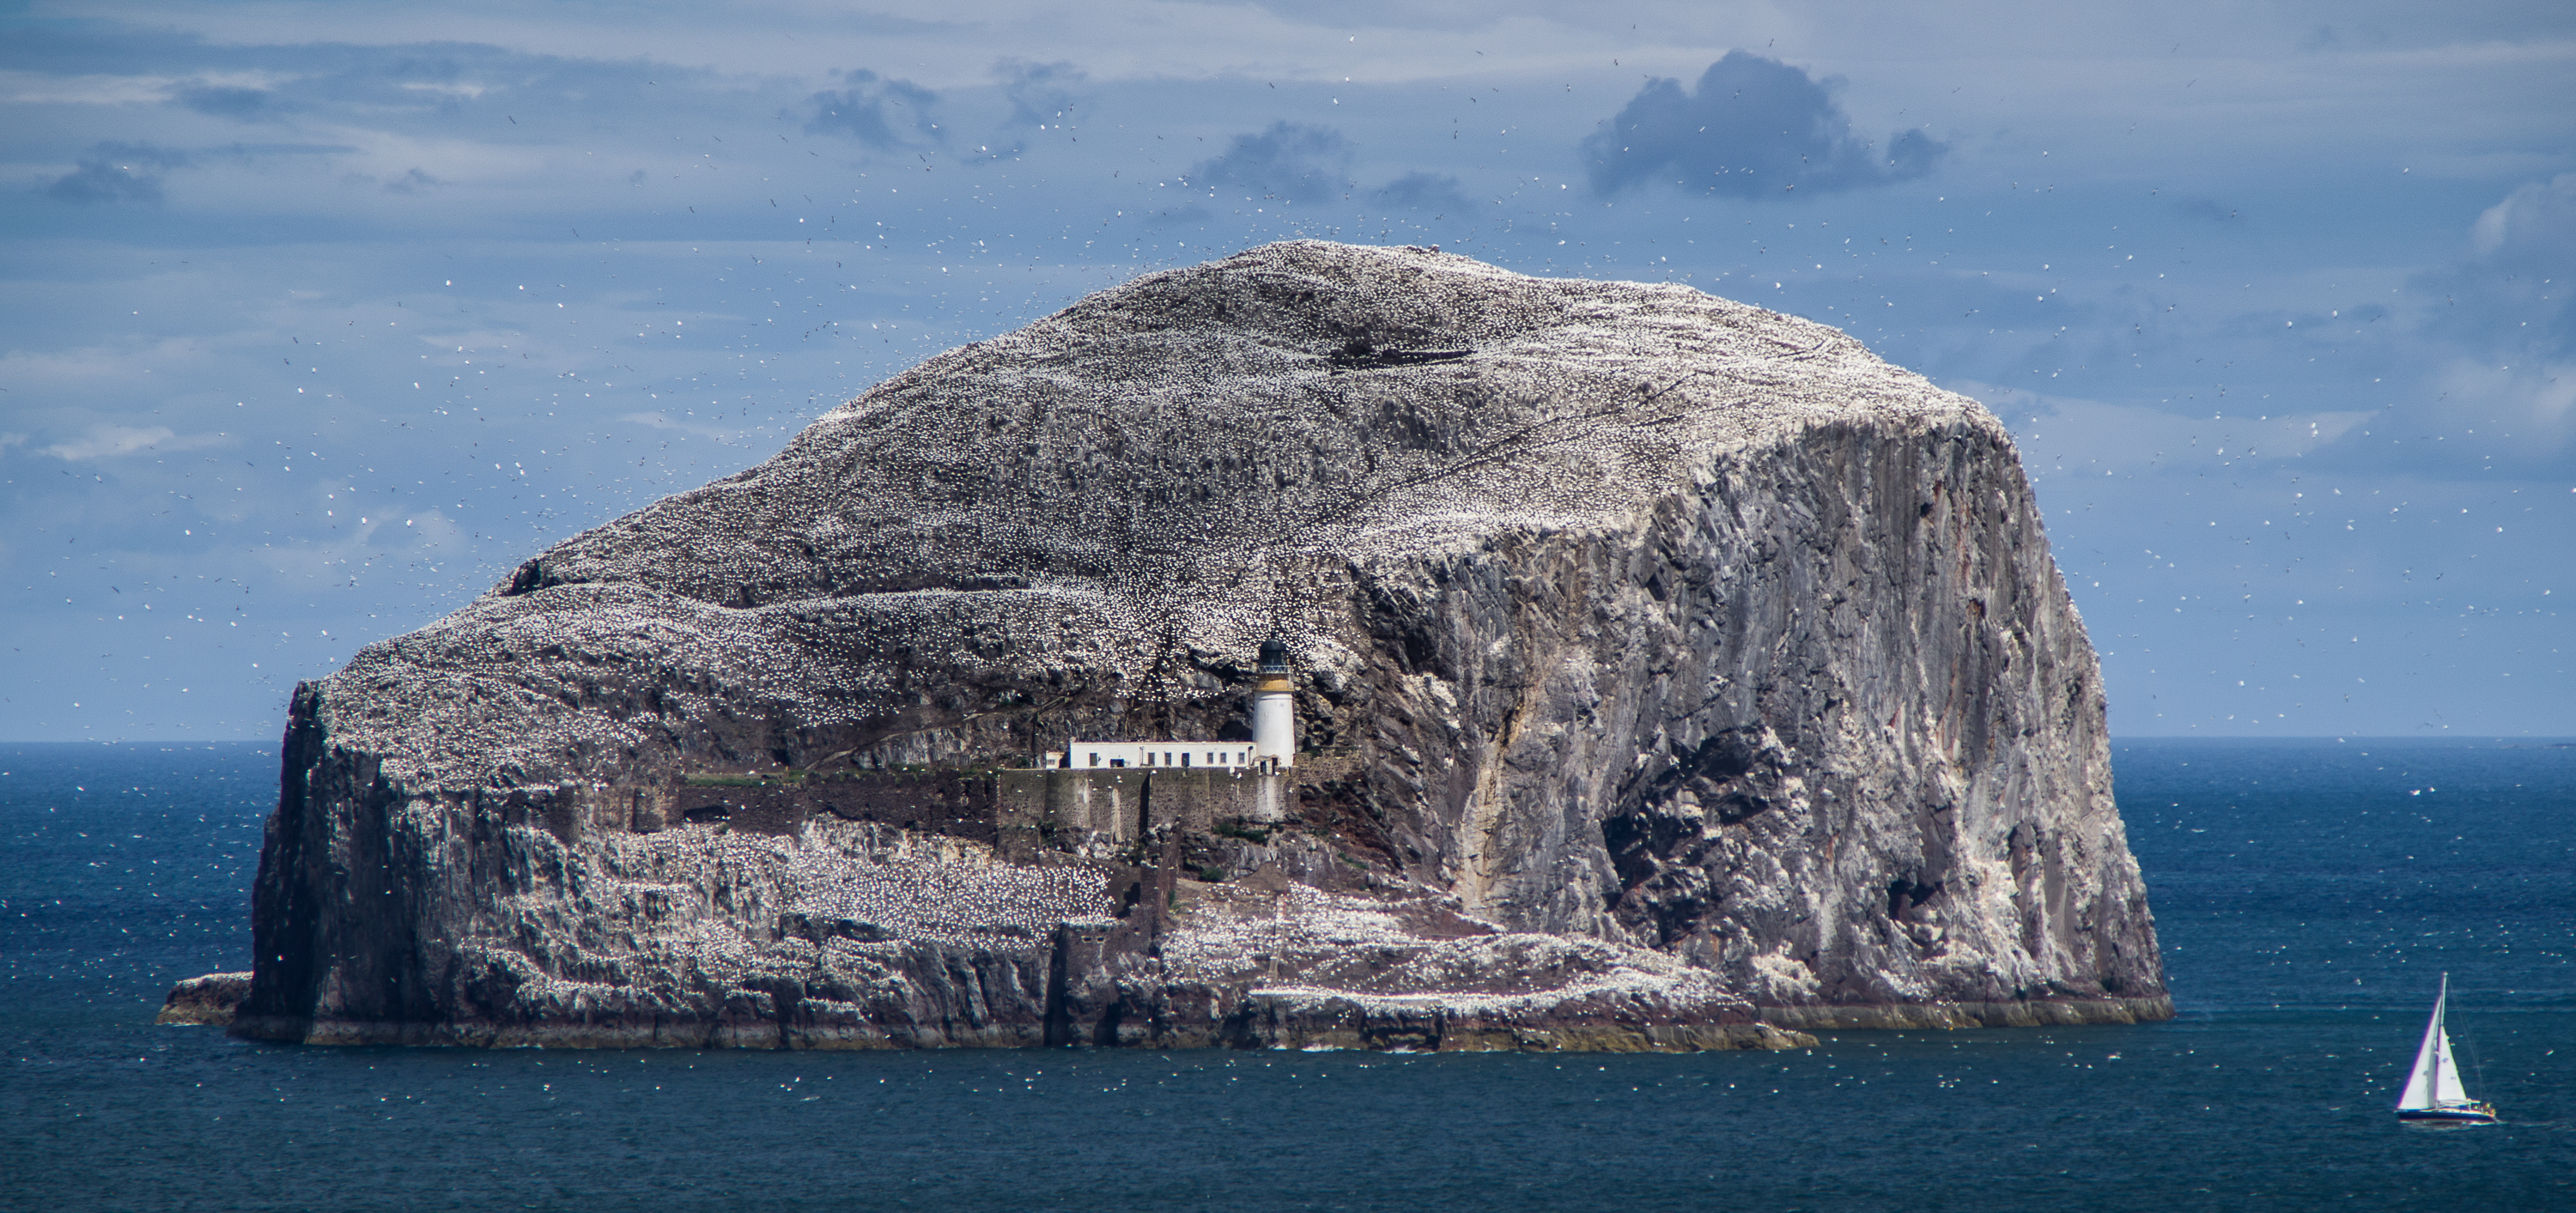 Bass rock lighthouse